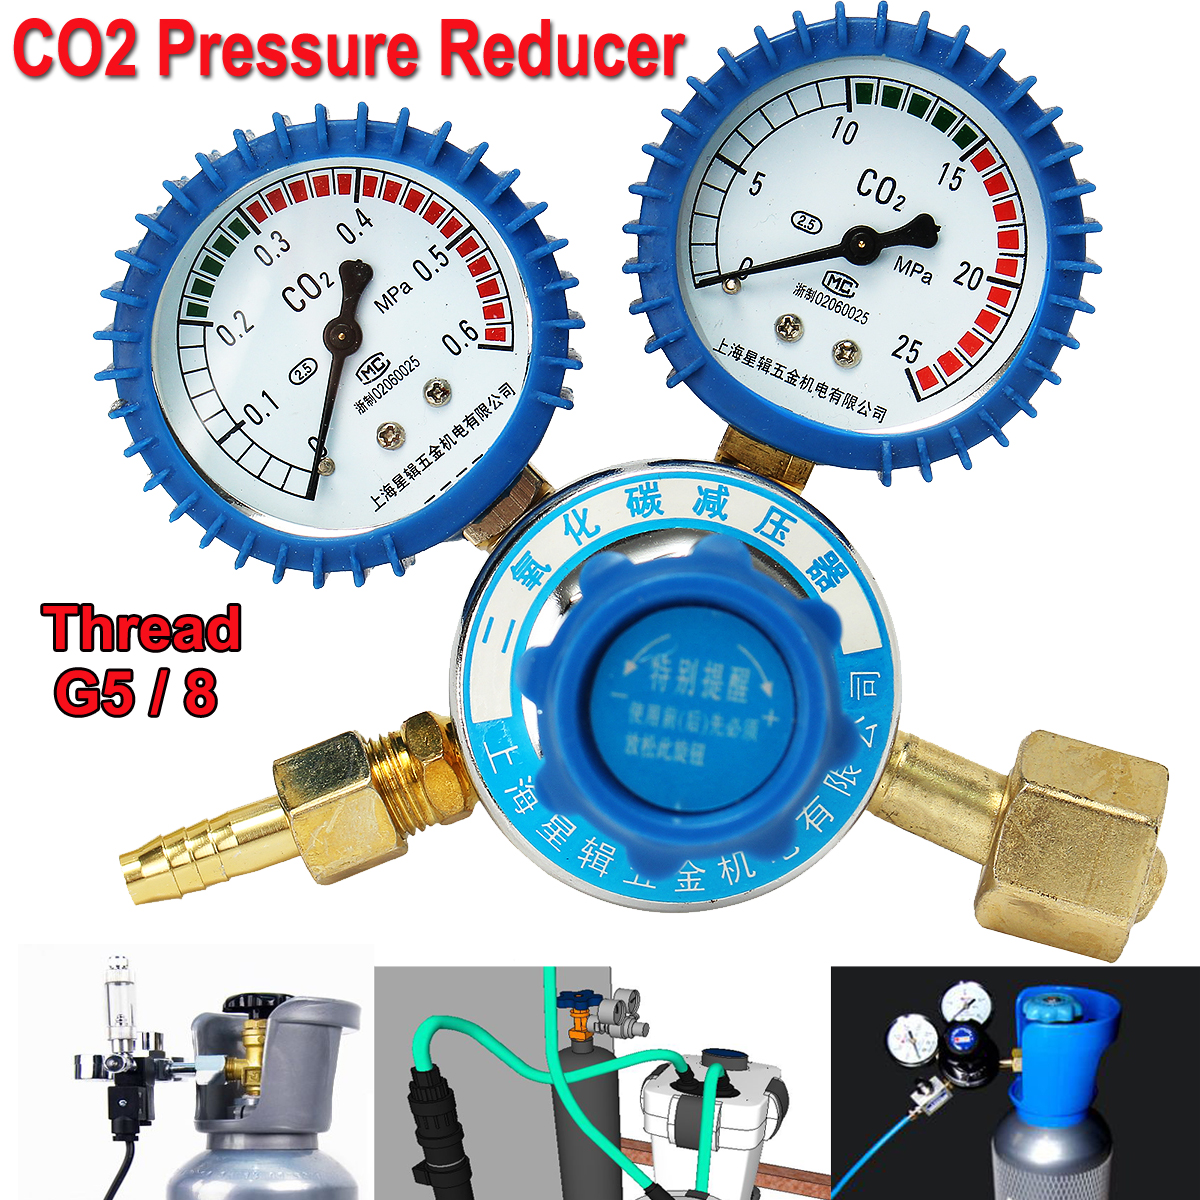 Argon CO2 Pressure Reducer Mig Tig Flow Control Gas Regulator Dual Gauge Welding factory direct carbon dioxide gas welding gas mixture co2 pressure reducer heating accessories table gh100